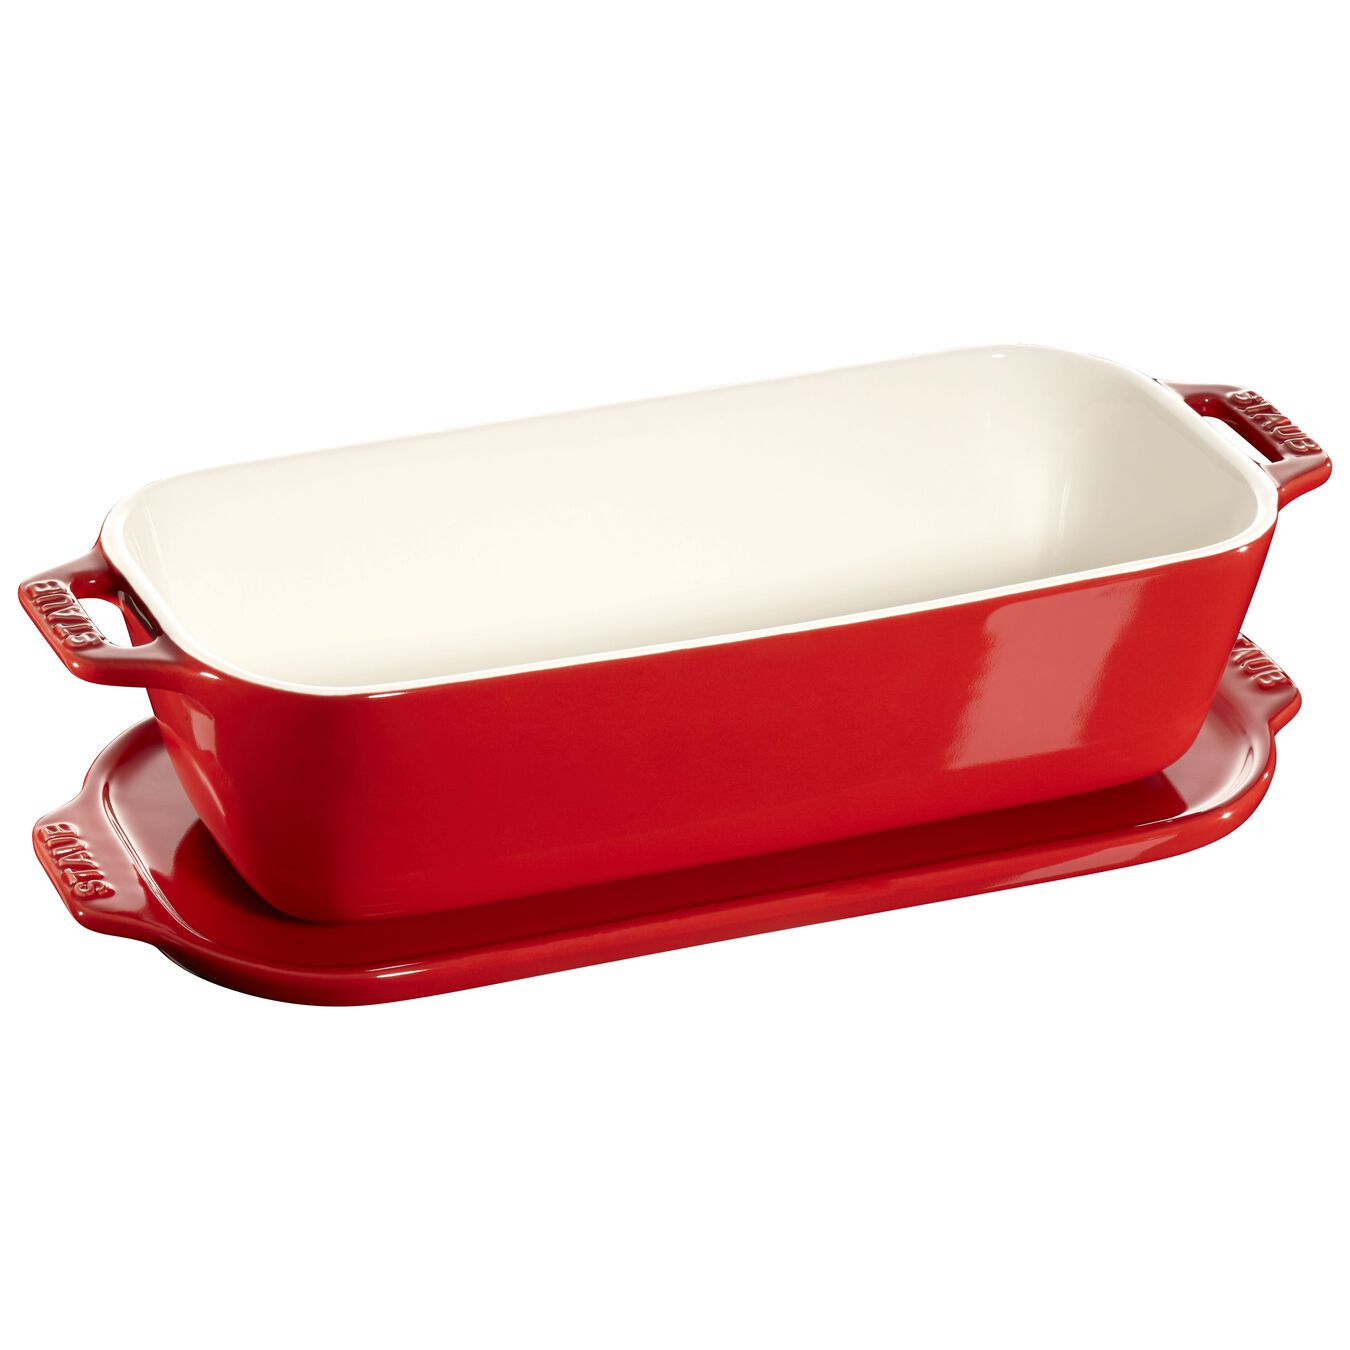 10-inch x 4.5-inch Covered Pate/Terrine Mold - Cherry,,large 1